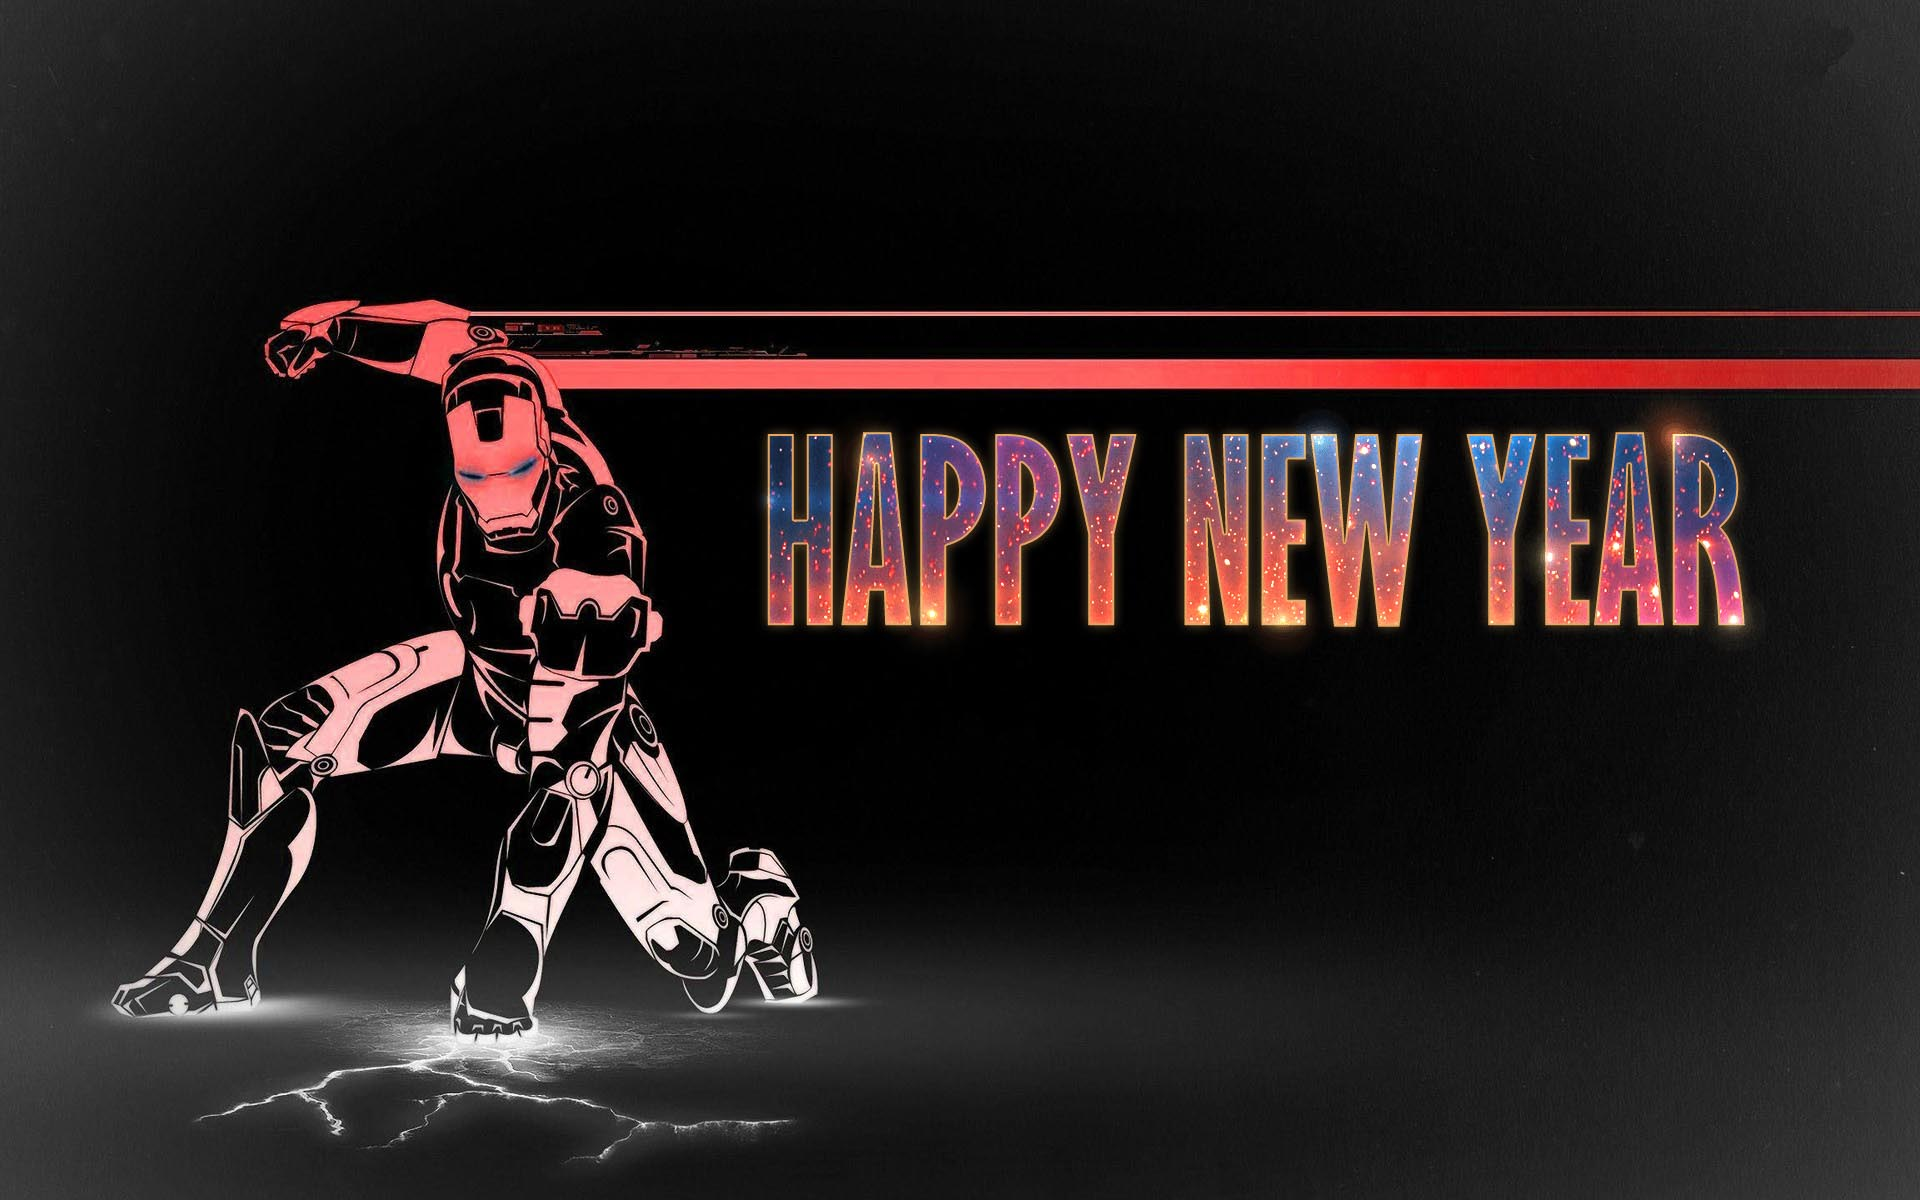 happy new year wishes super hero ironman kids art hd wallpaper